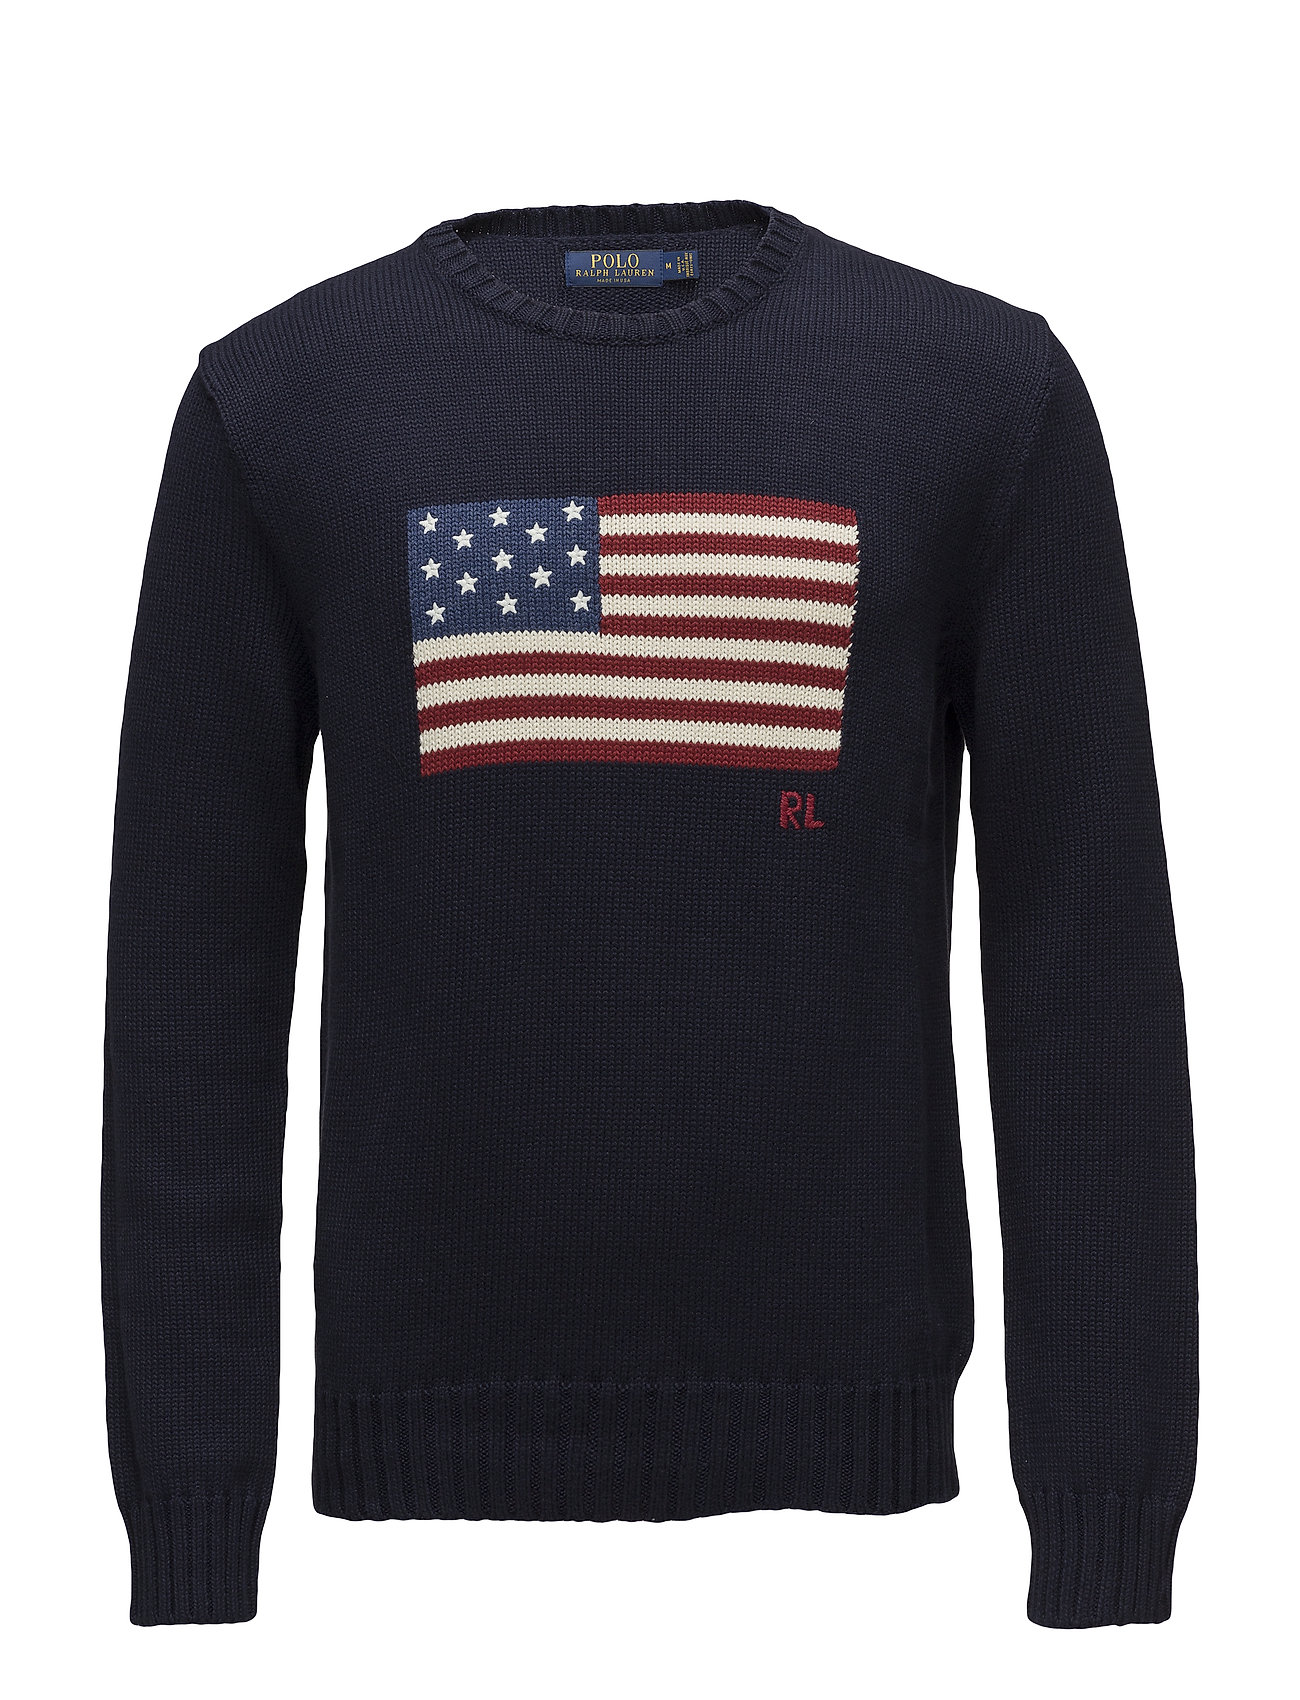 Polo Ralph Lauren The Iconic Flag Sweater - NAVY